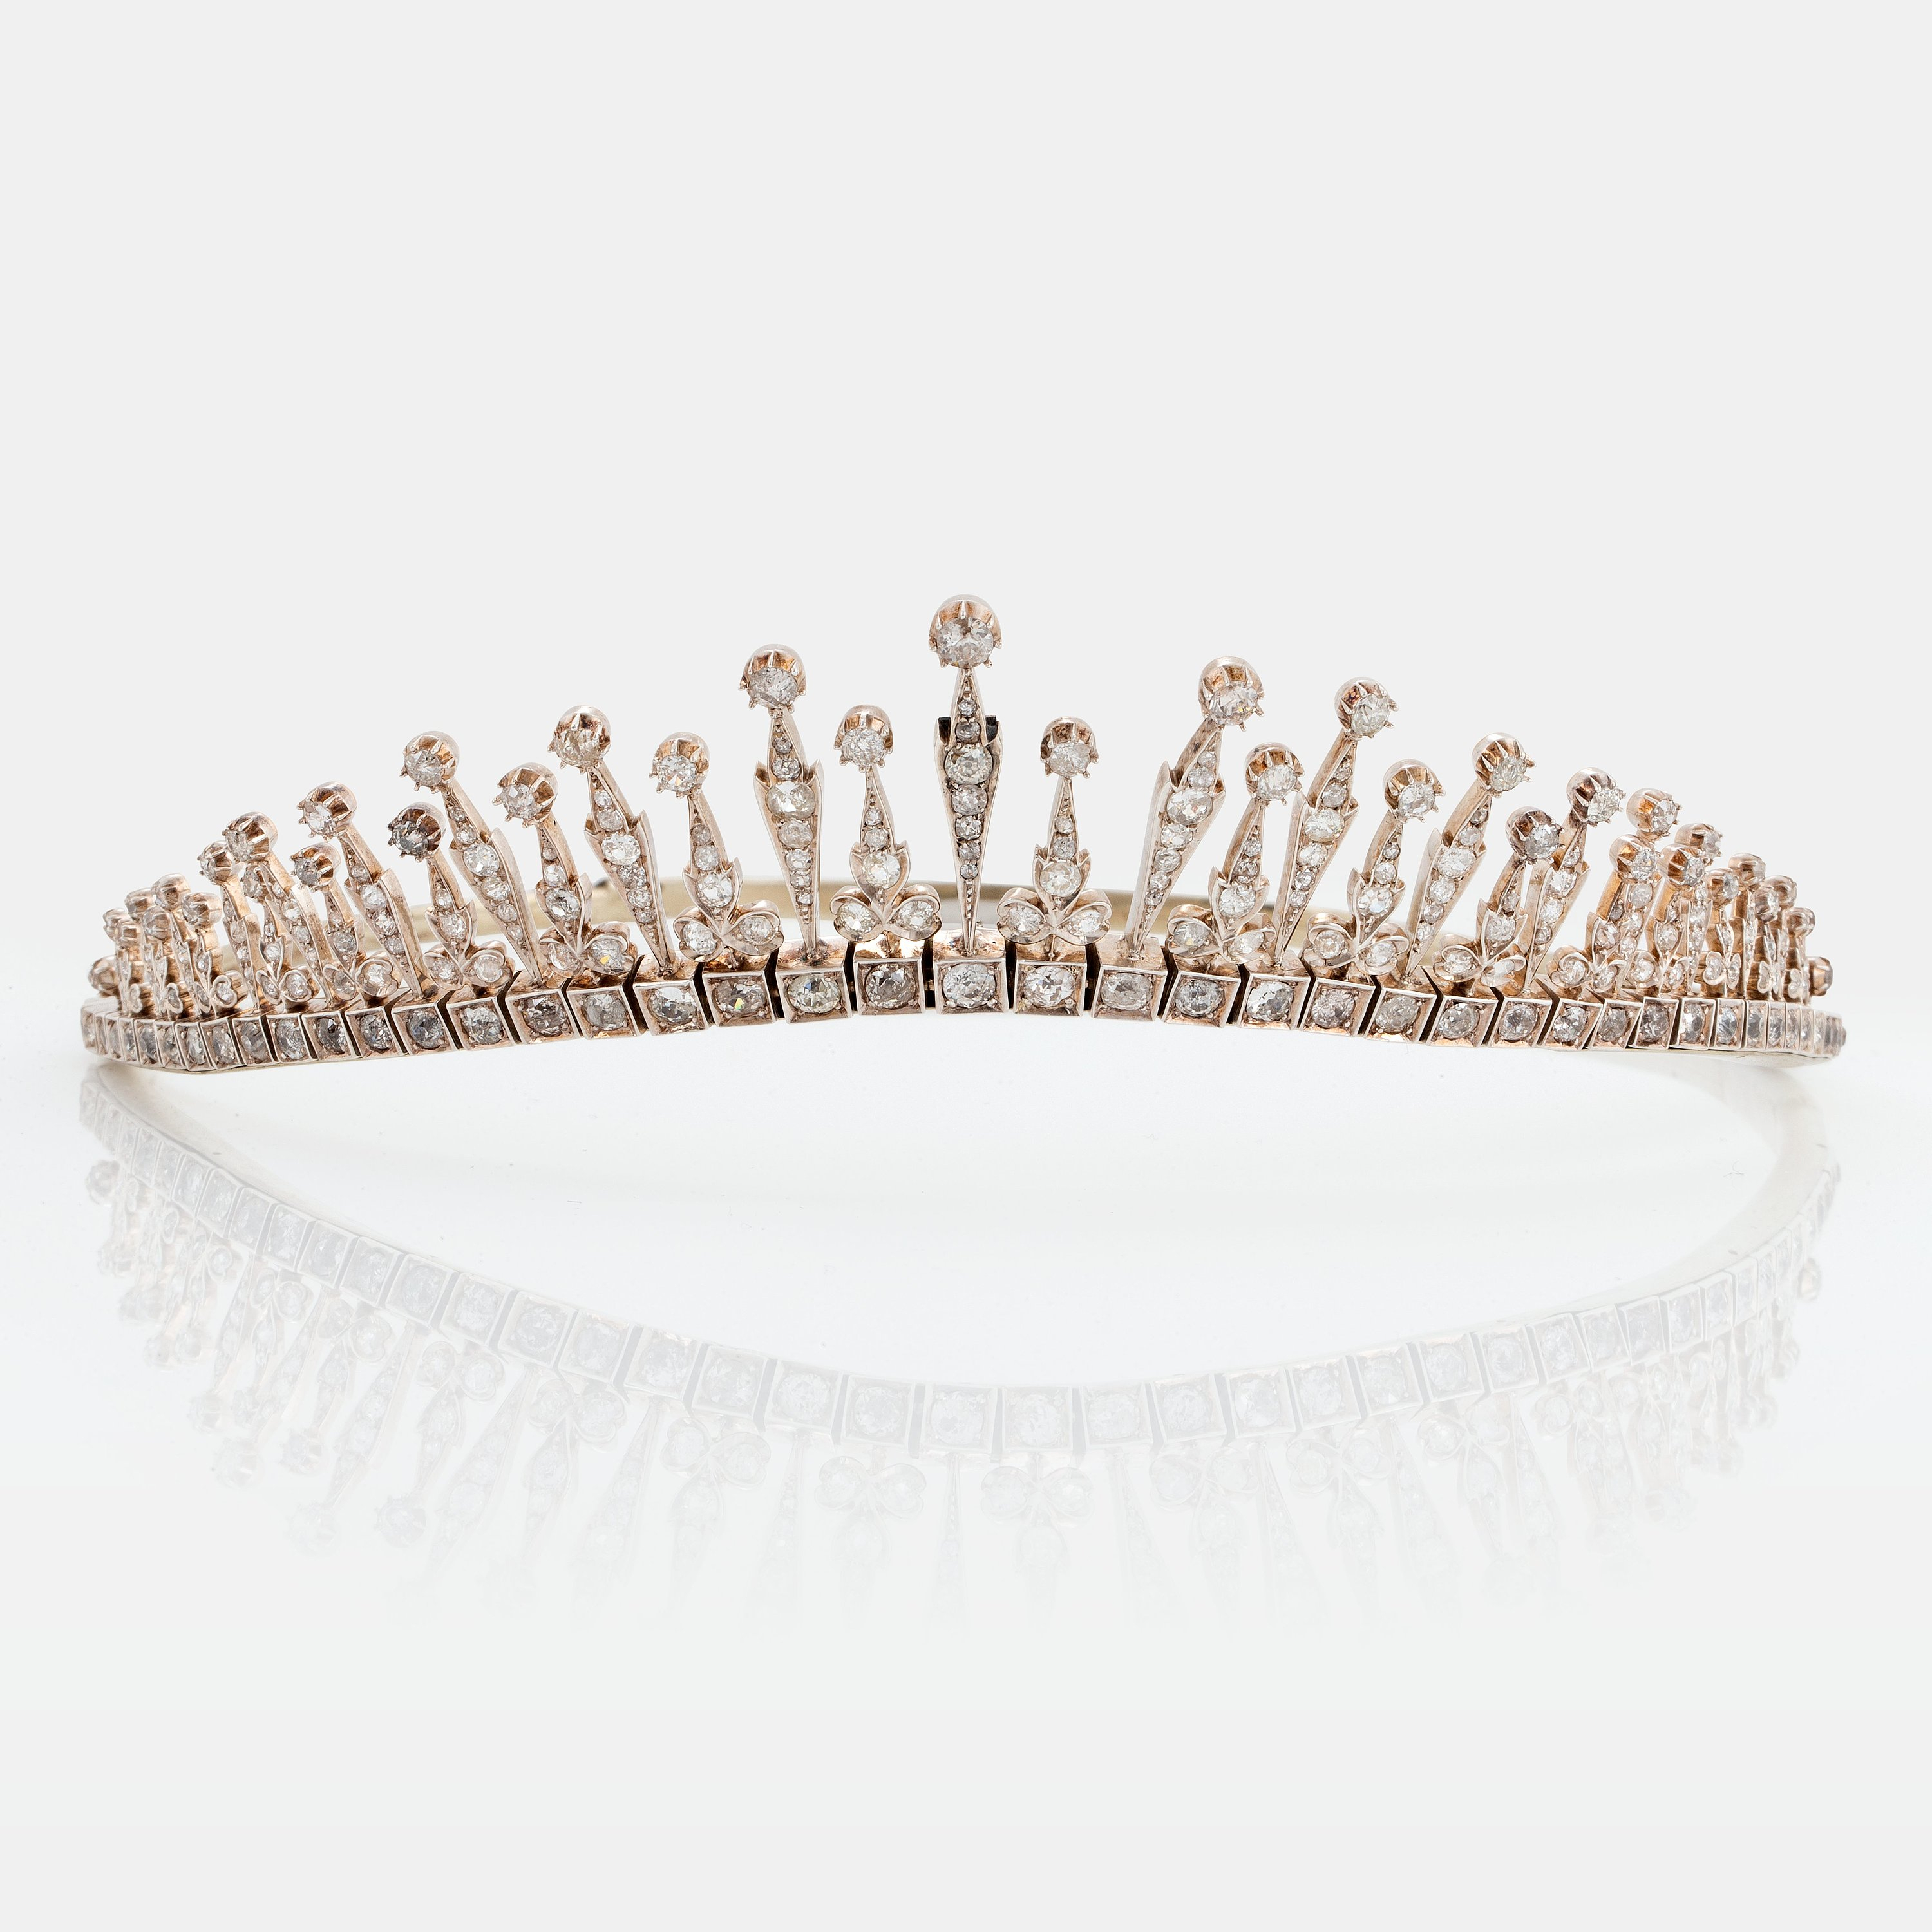 A Tiara/necklace Combination In 9k Gold And Silver Set With Old Cut For Most Up To Date Tiara Crown Collier Necklaces (View 18 of 25)